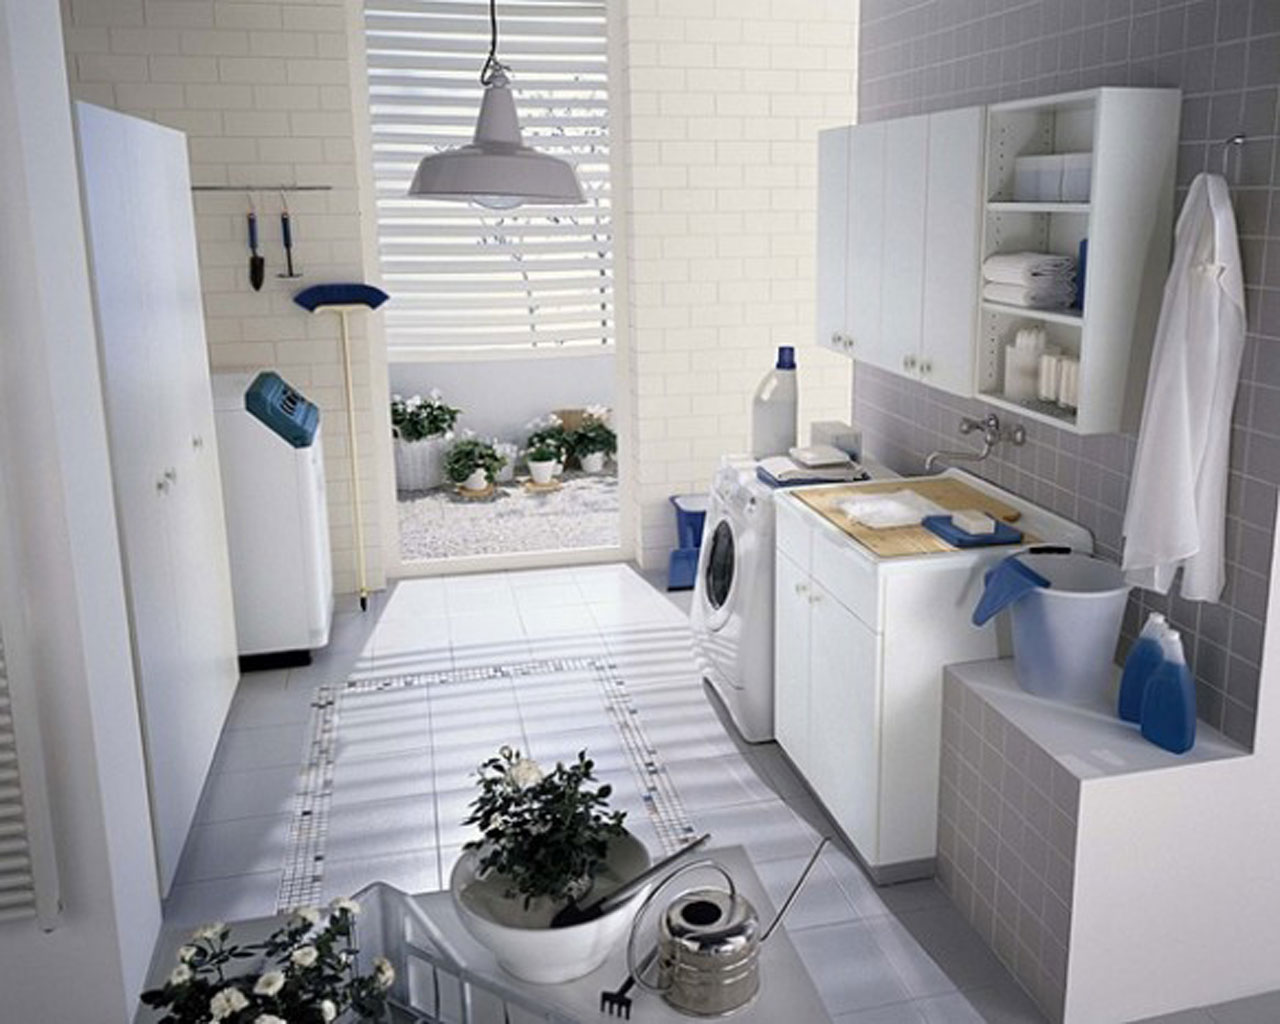 Laundry room layout best layout room Design a laundr room laout